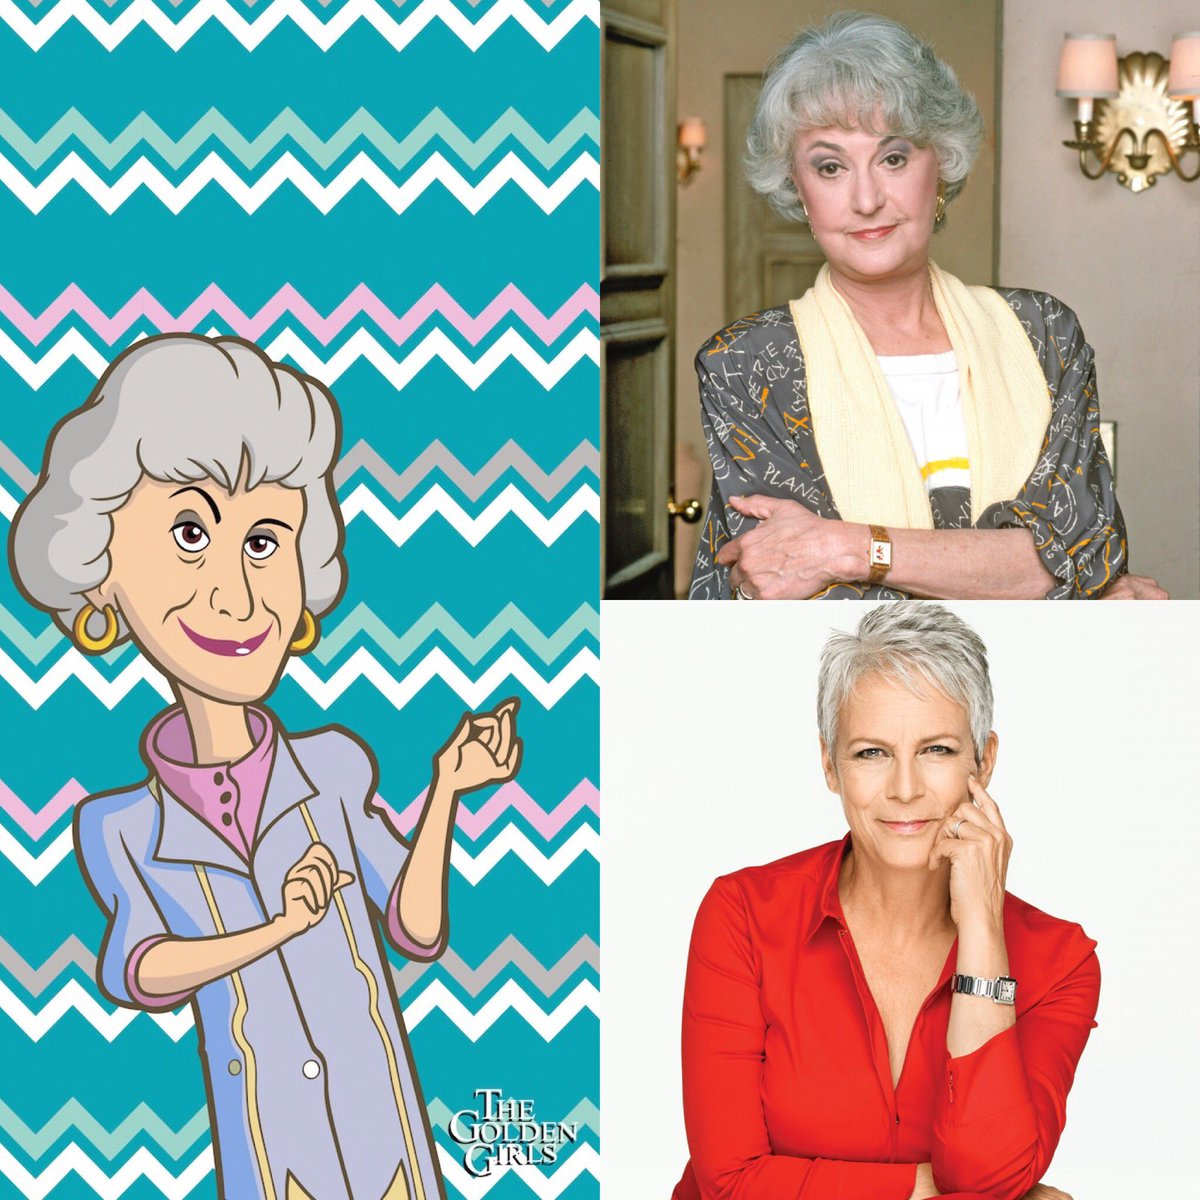 I would love for @jimmykimmel to do another special for a classic sitcom, but this time focus on &#39;The Golden Girls&#39;. Here's my wishlist for who I think should be cast as the 4 leads.  @jamieleecurtis as Dorothy Jessica Lange as Blanche Shelley Long as Rose  Glenn Close as Sophia <br>http://pic.twitter.com/yIdRFjCOpc